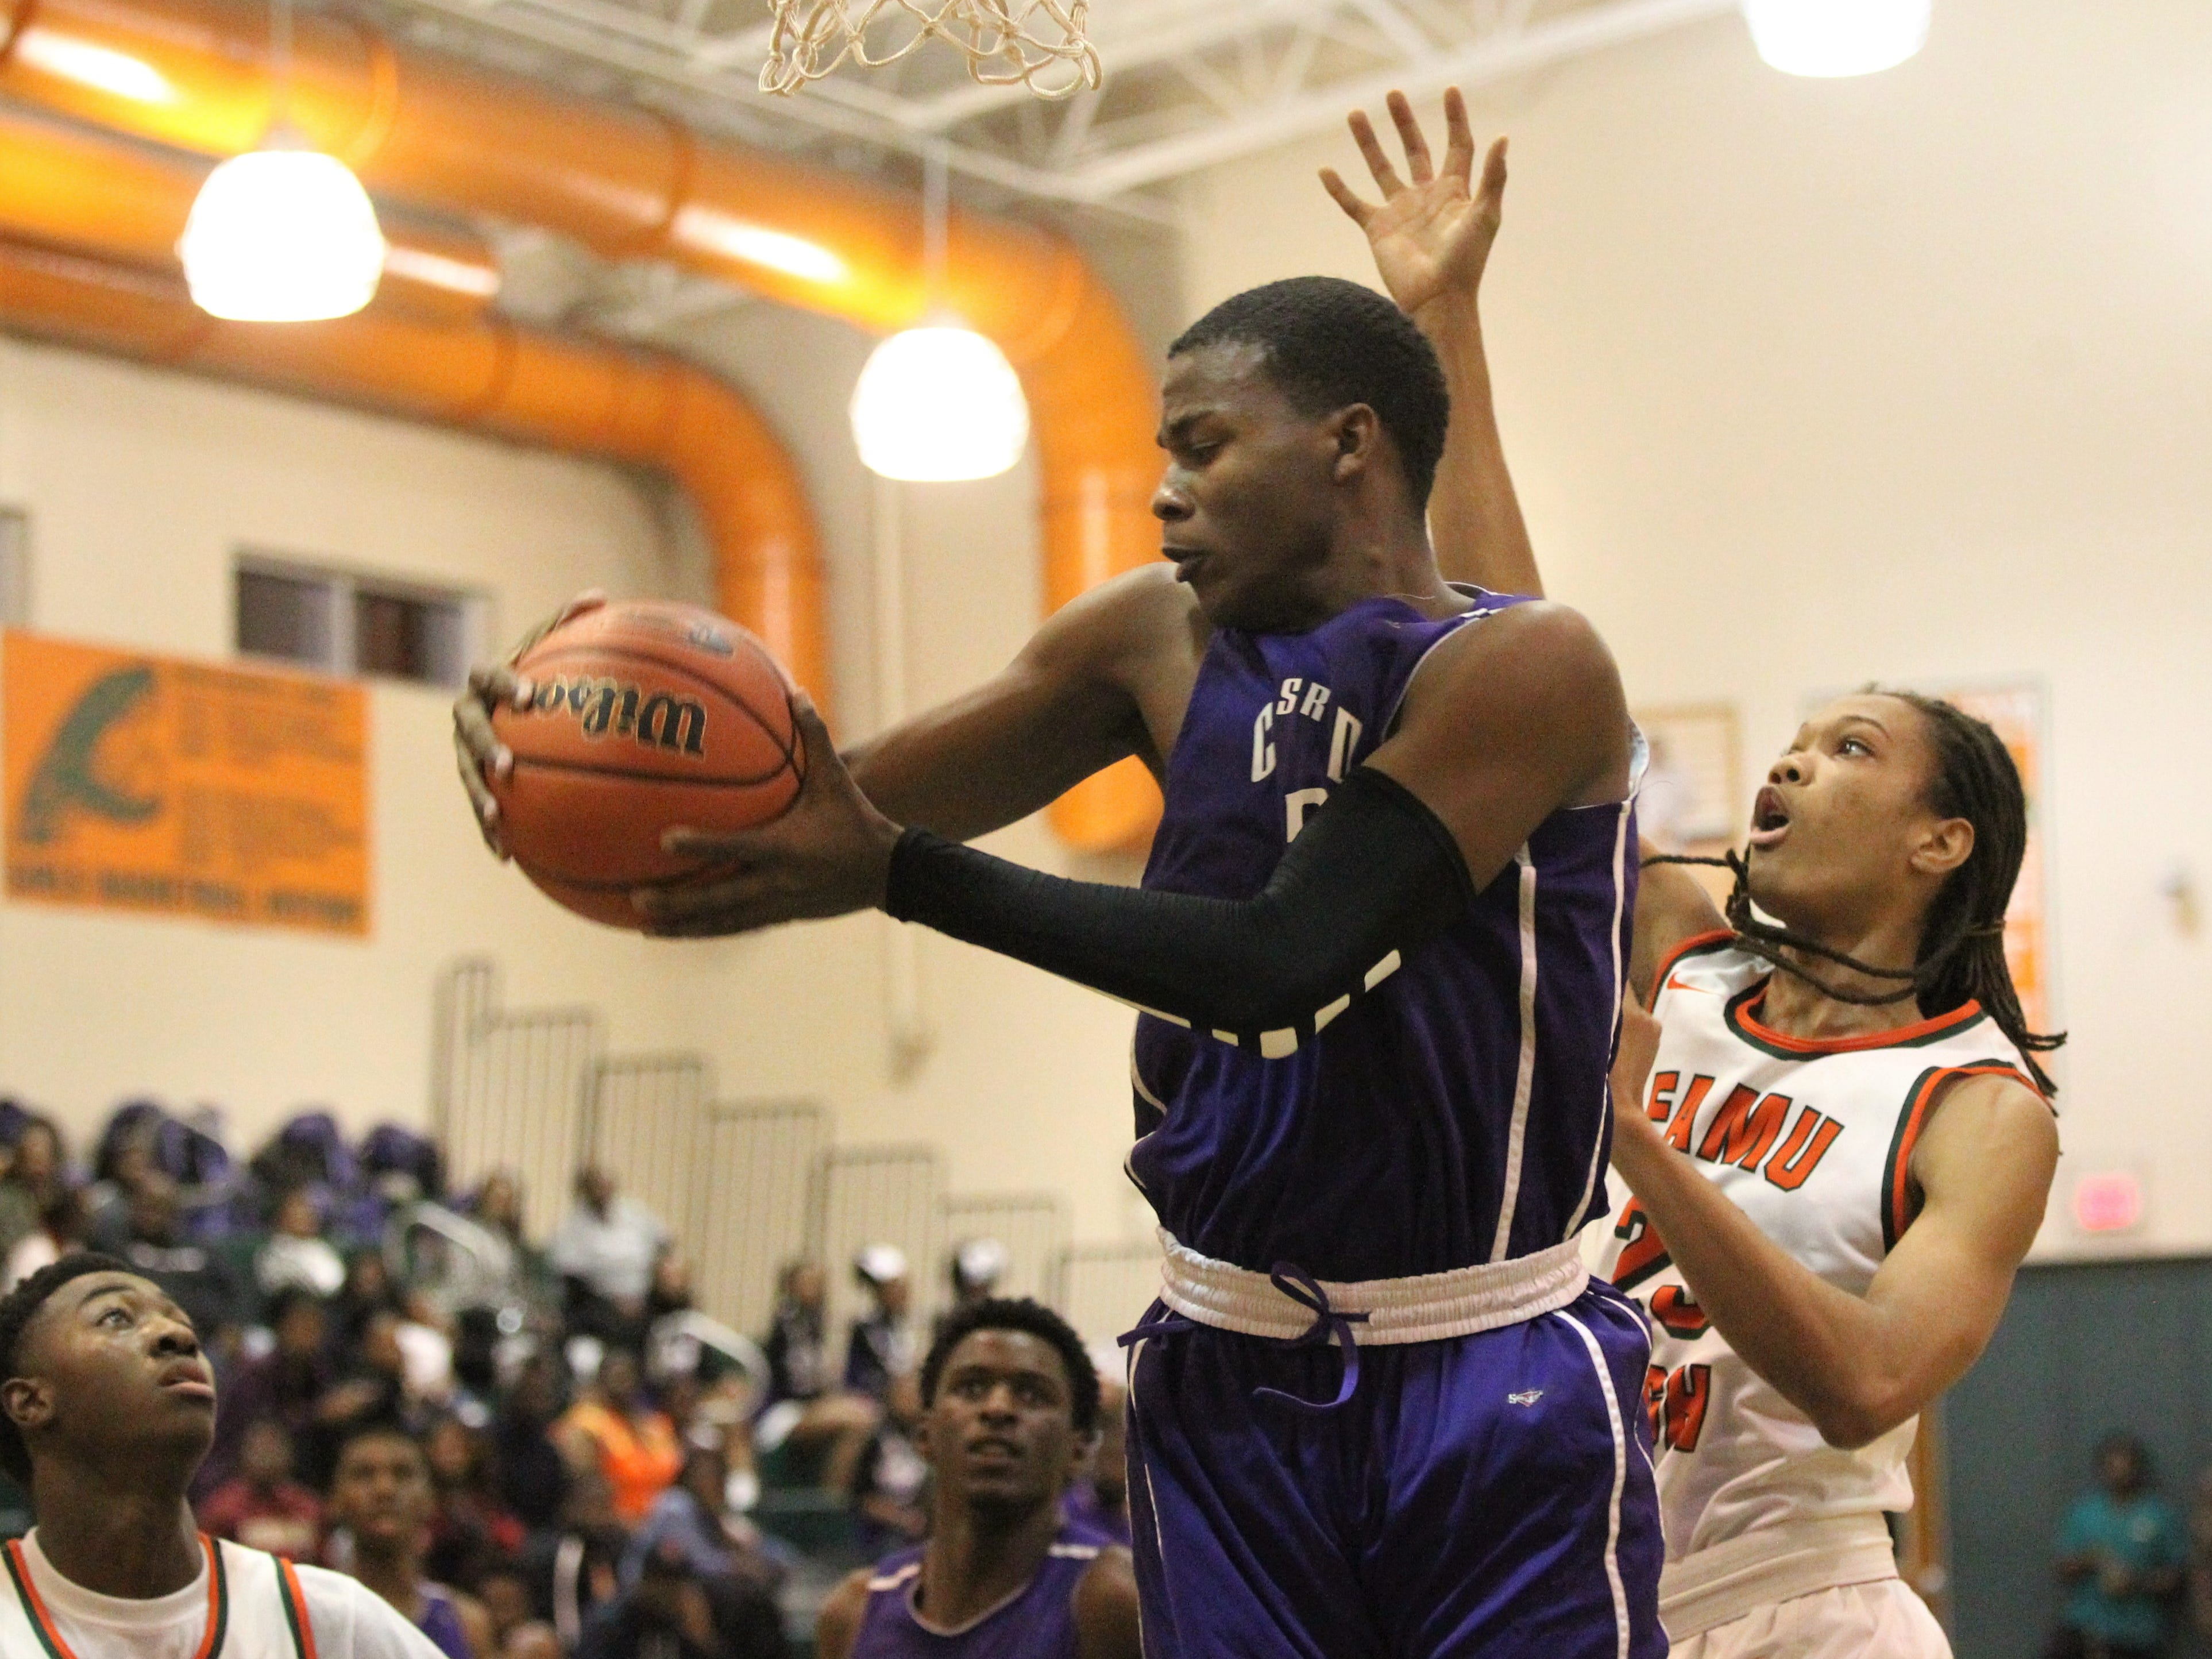 Dedric Streeter grabs a rebound as Crossroad Academy's boys basketball team plays at FAMU DRS on Jan. 7, 2019.